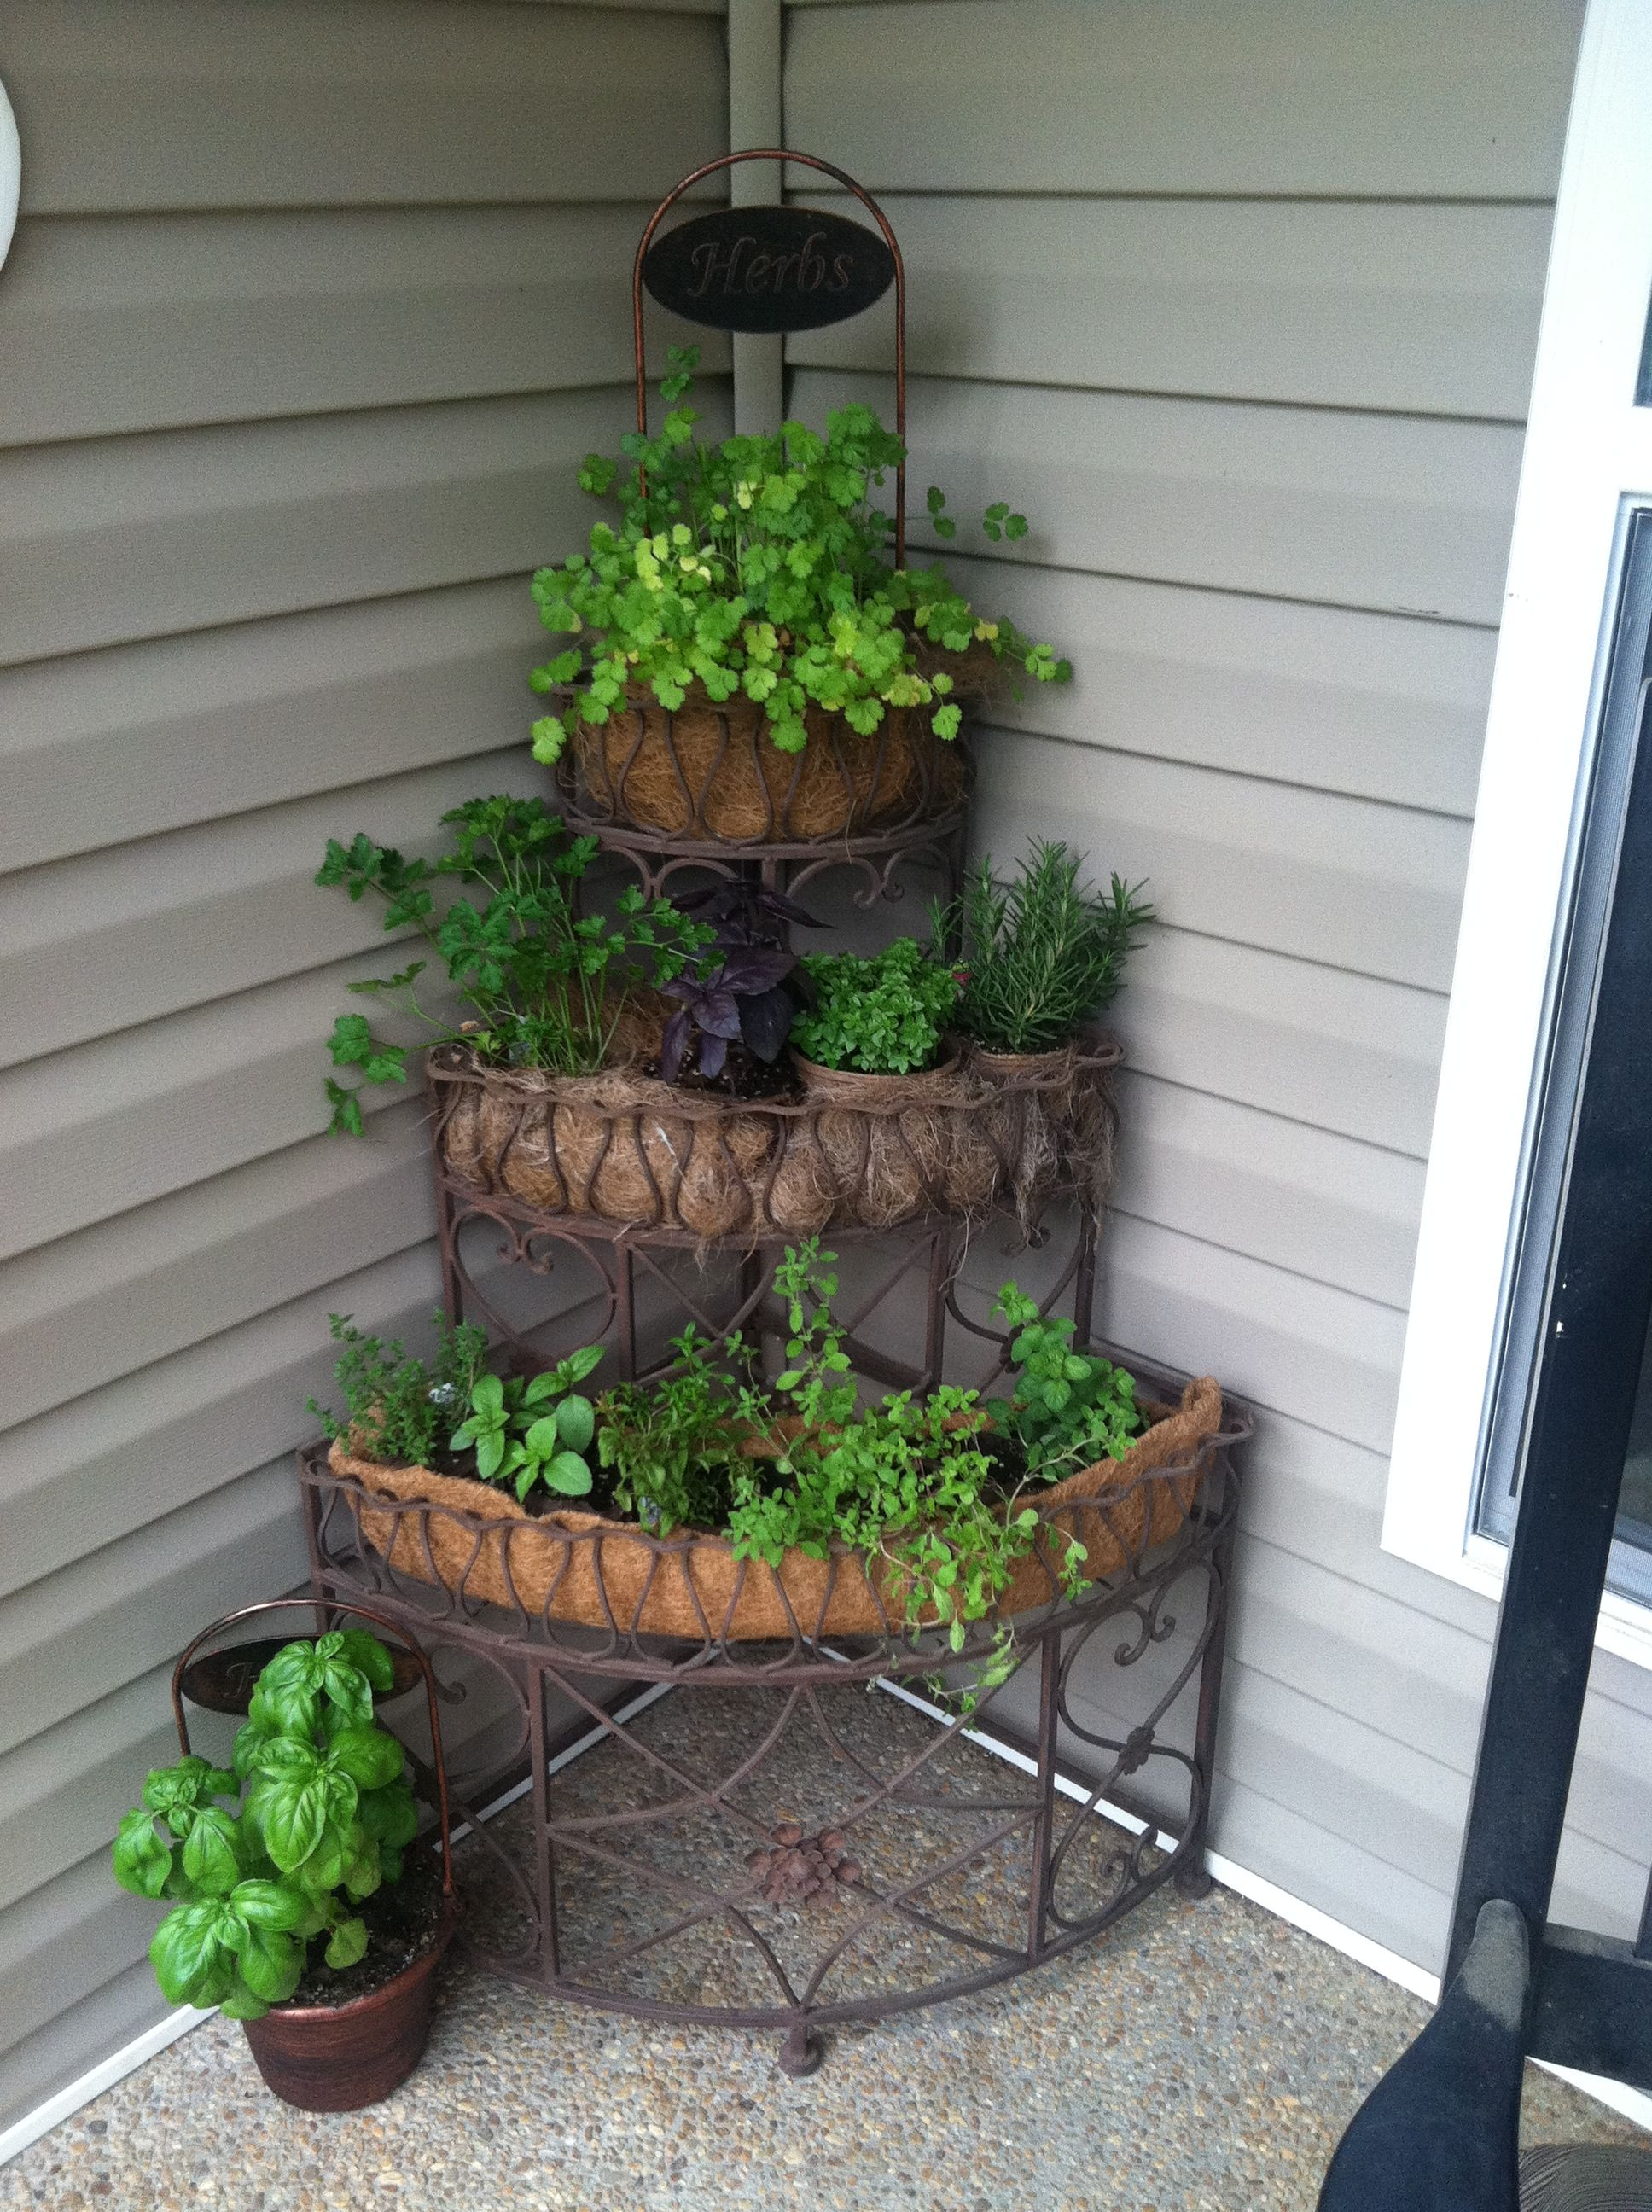 Portable herb garden to place beside the grill or kitchen